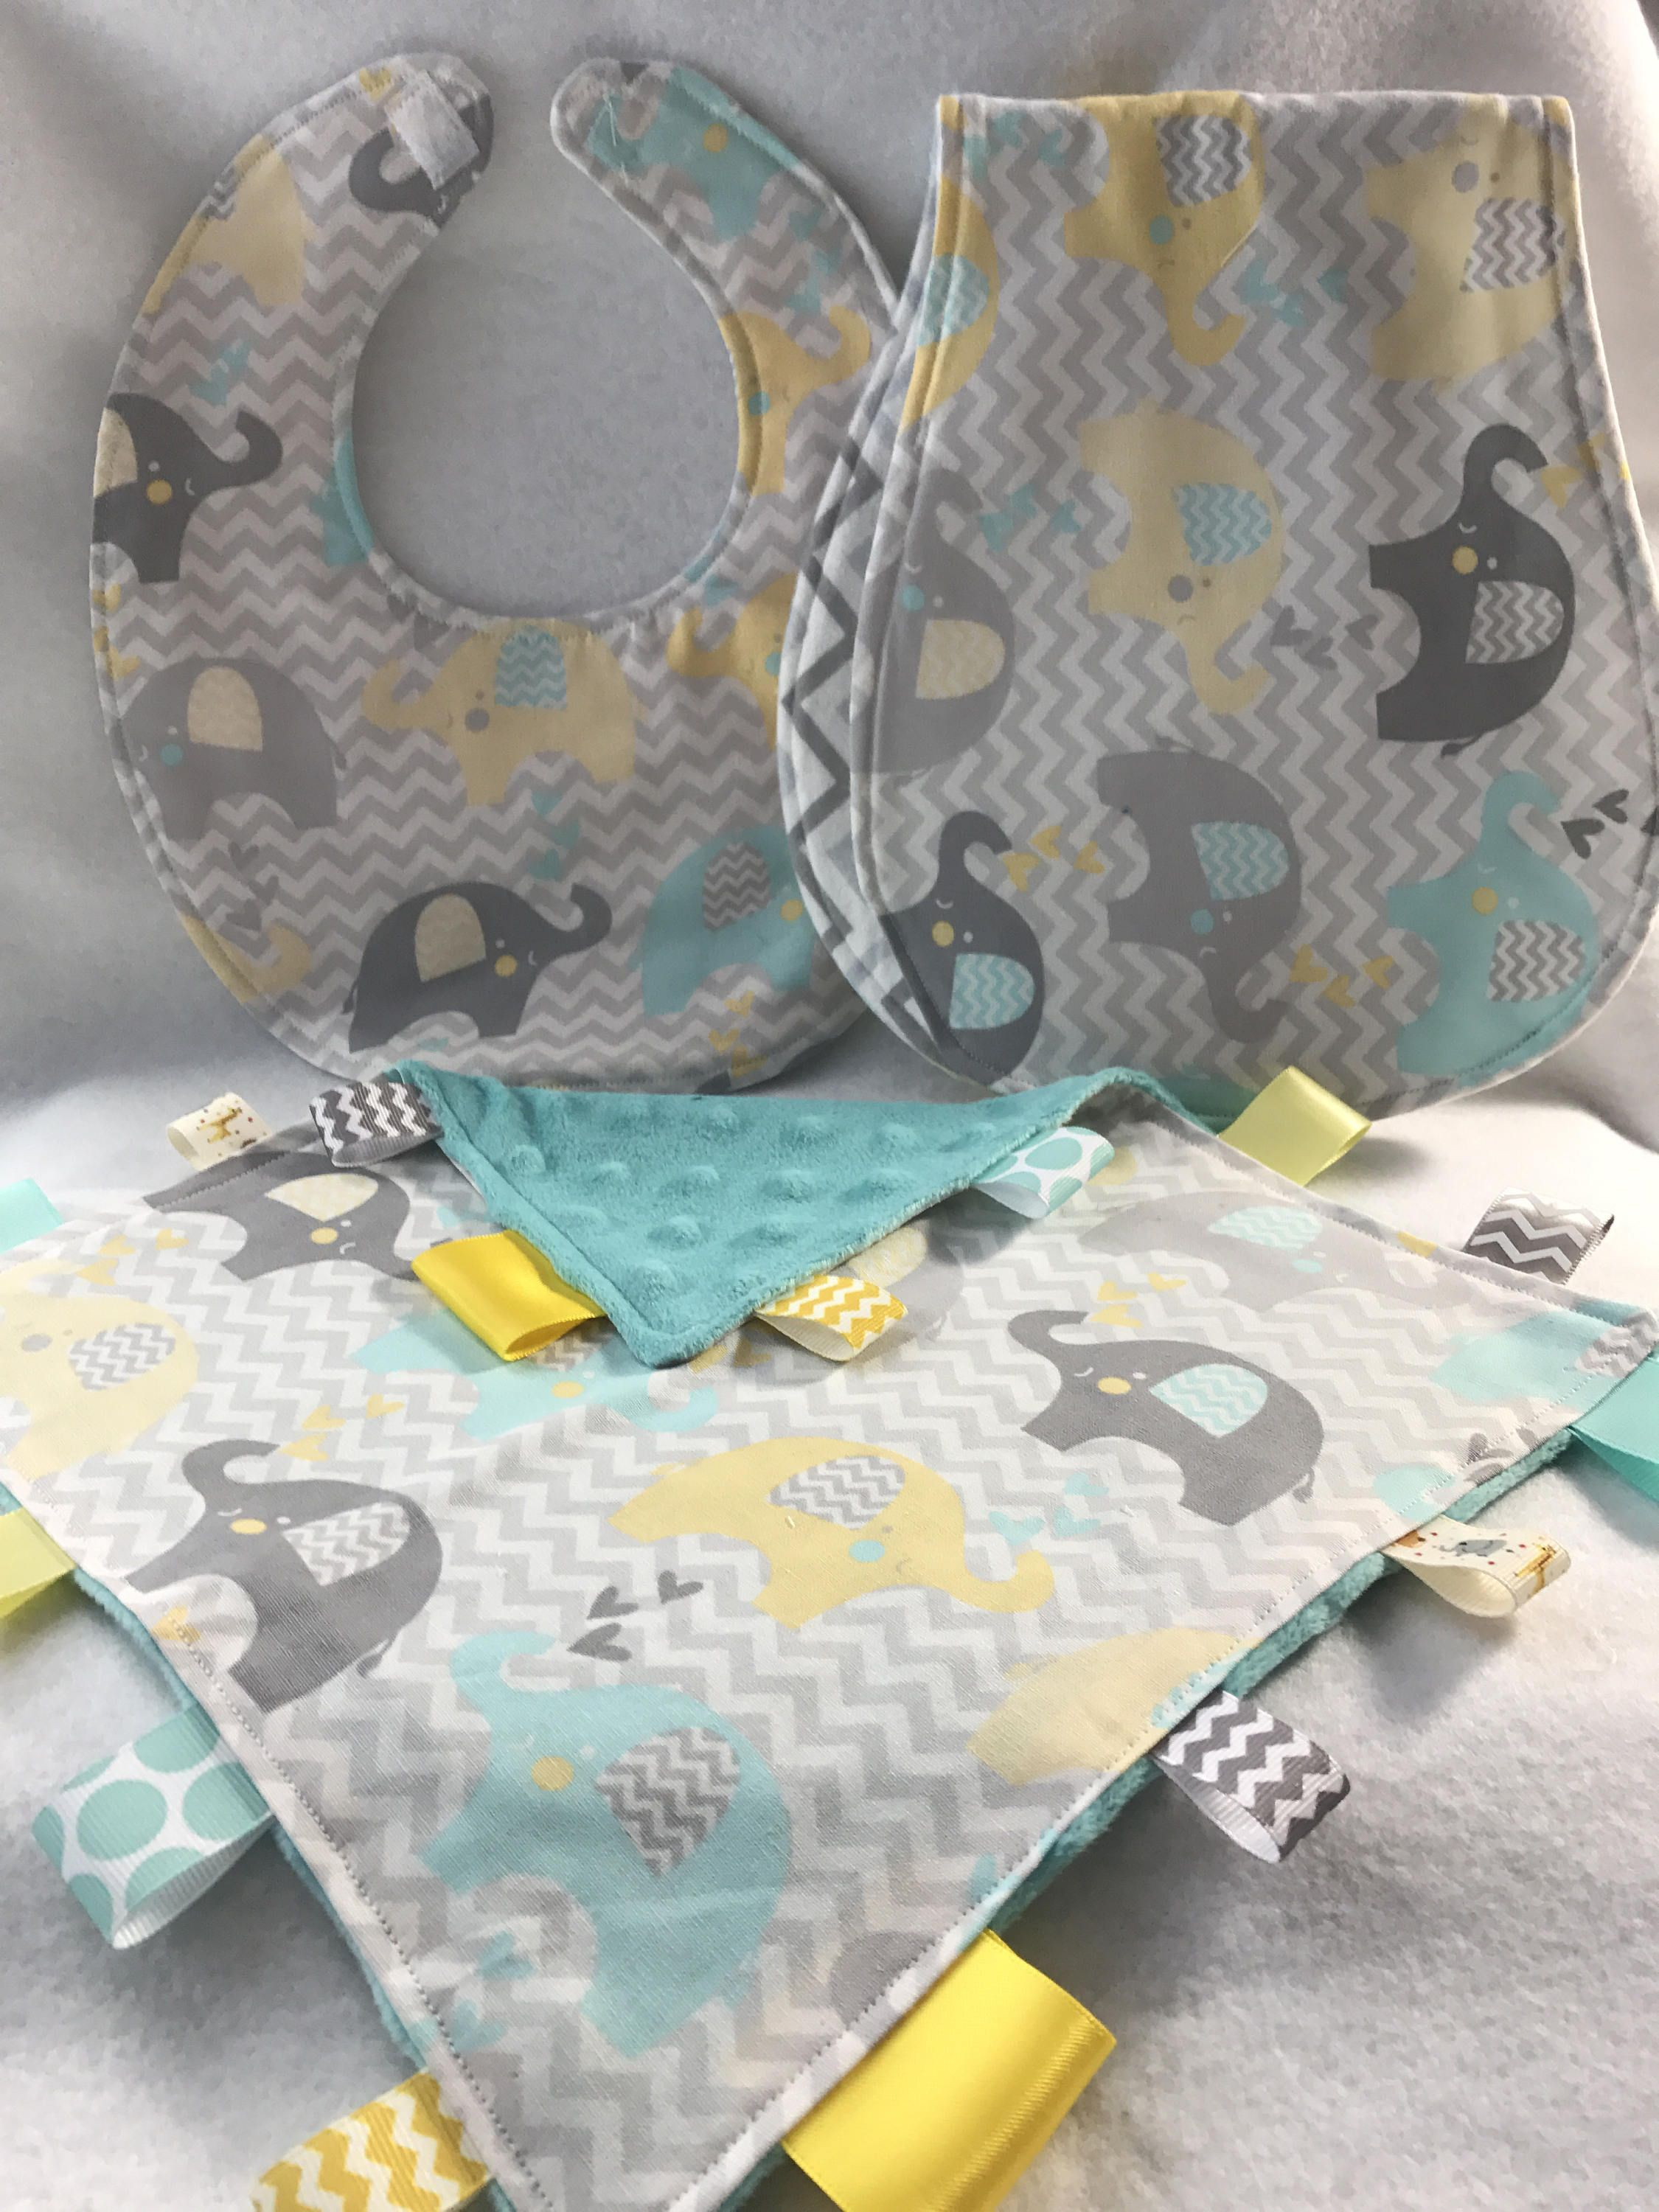 Pin by babs baby boutique on babs baby boutiue pinterest baby pin by babs baby boutique on babs baby boutiue pinterest baby gift sets elephant baby and bibs negle Choice Image